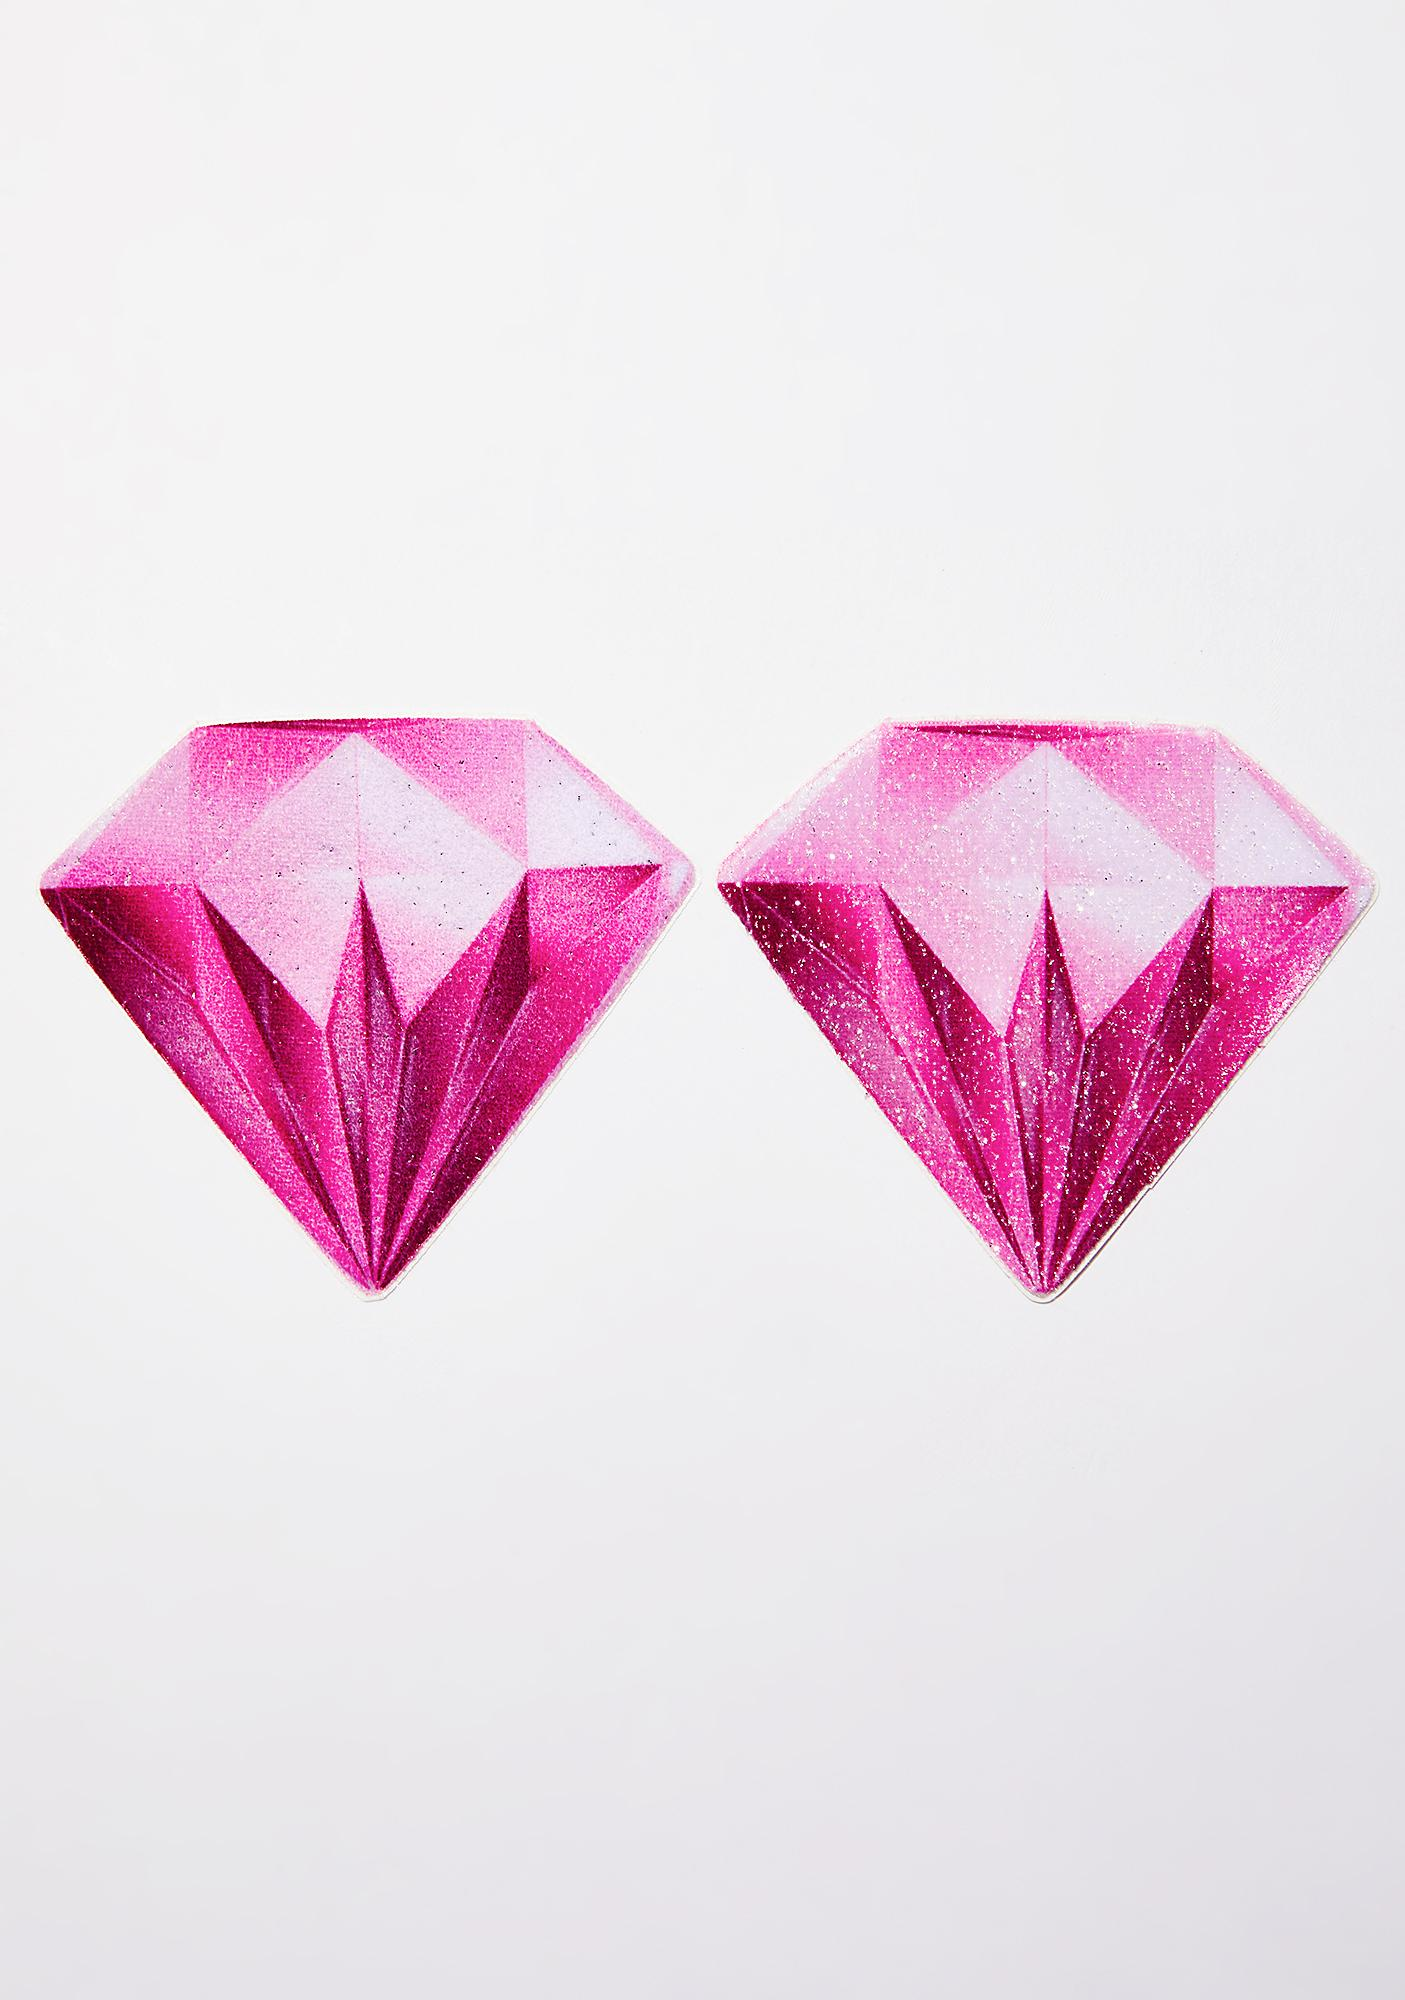 Pastease Pink Diamond Sparkling Velvet Pasties